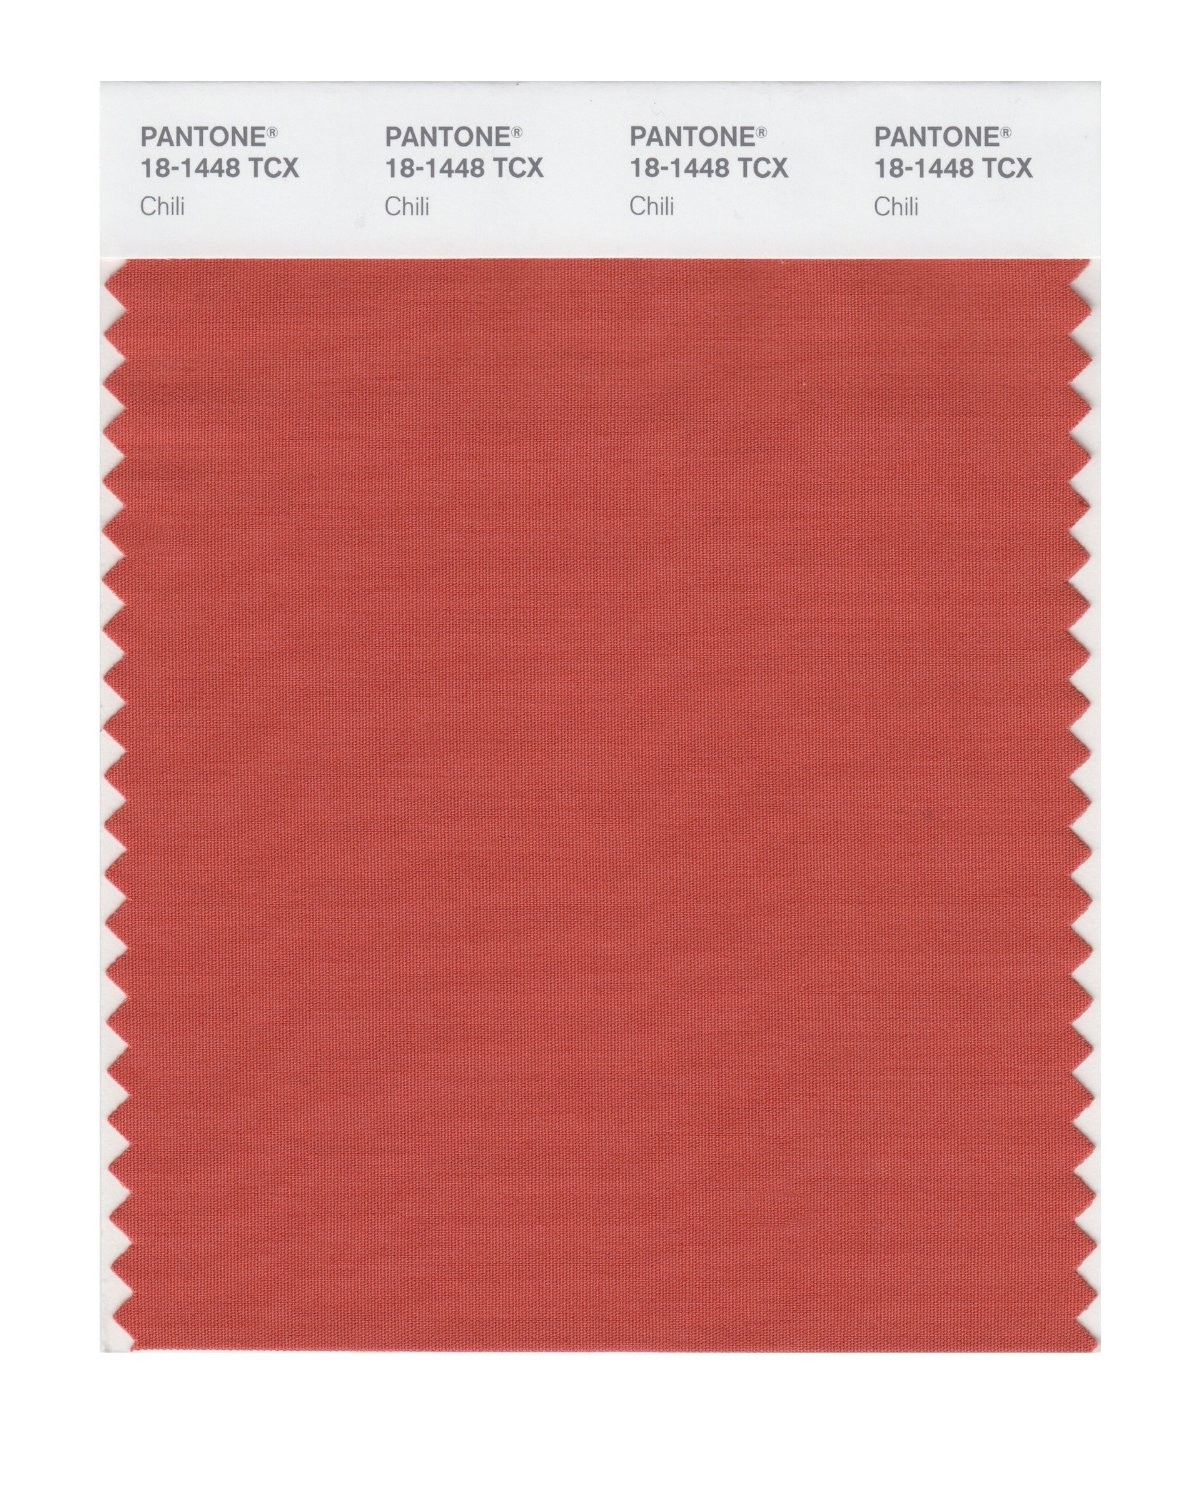 Pantone 18-1448 TCX Swatch Card Chili